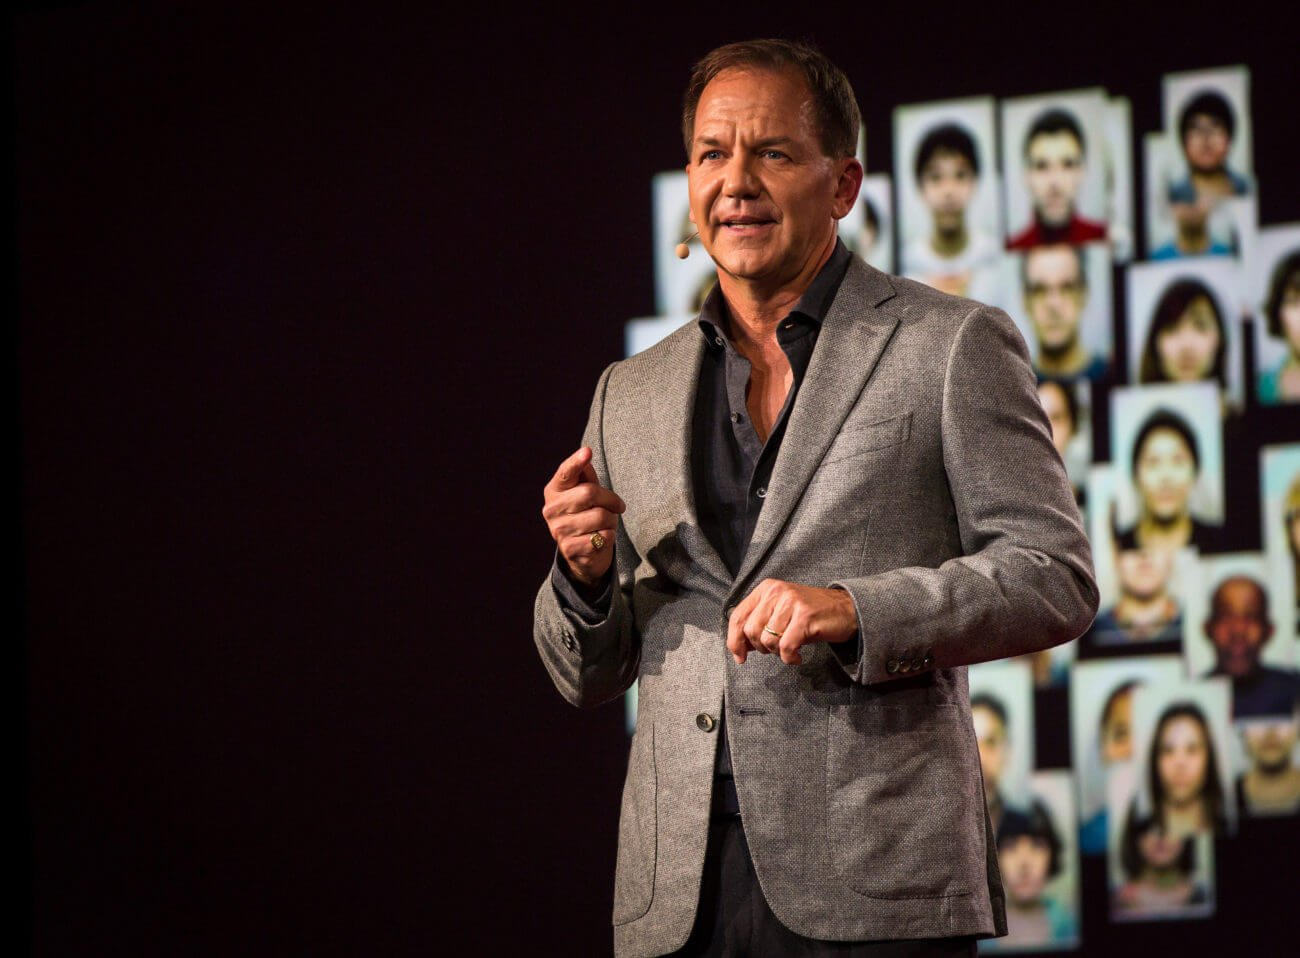 Billionaire Paul Tudor Jones Needs To Salvage His Chronicle Straight On Bitcoin